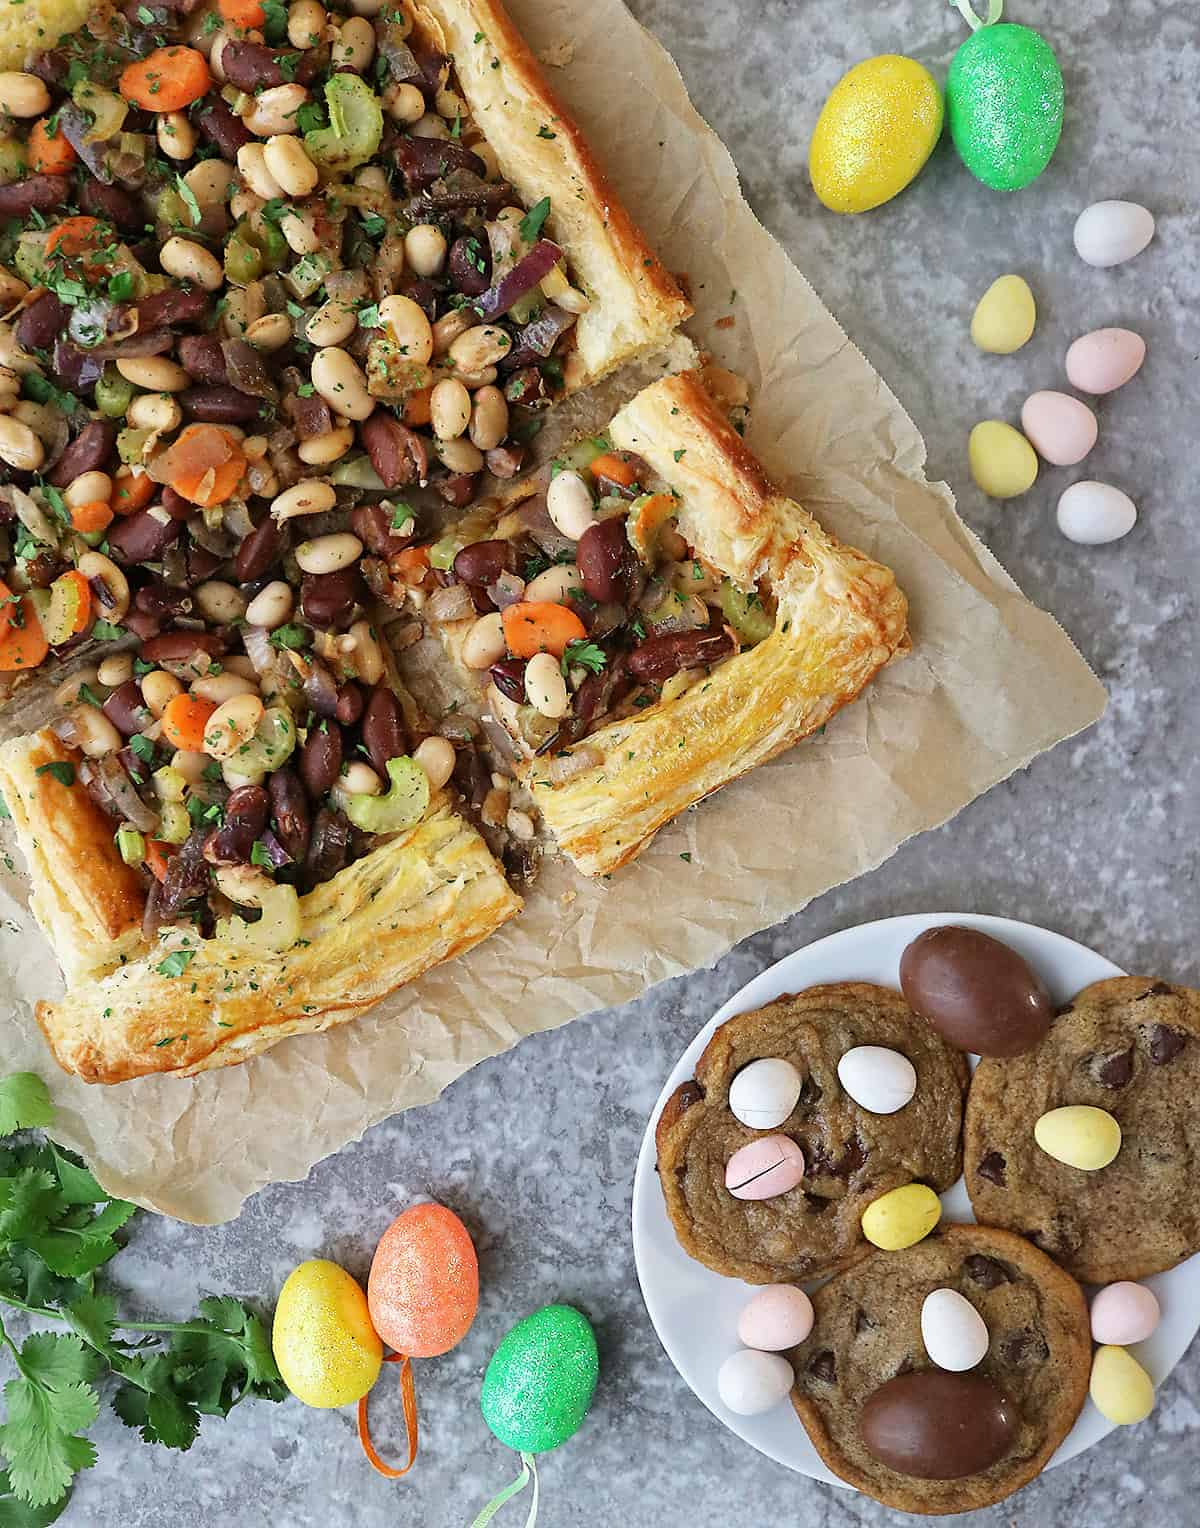 This super simple bean tart is made with puff pastry, canned beans, and a handful of other ingredients from your pantry. Serve it up for a tasty weeknight dinner or for your stay-at-home Easter meal.